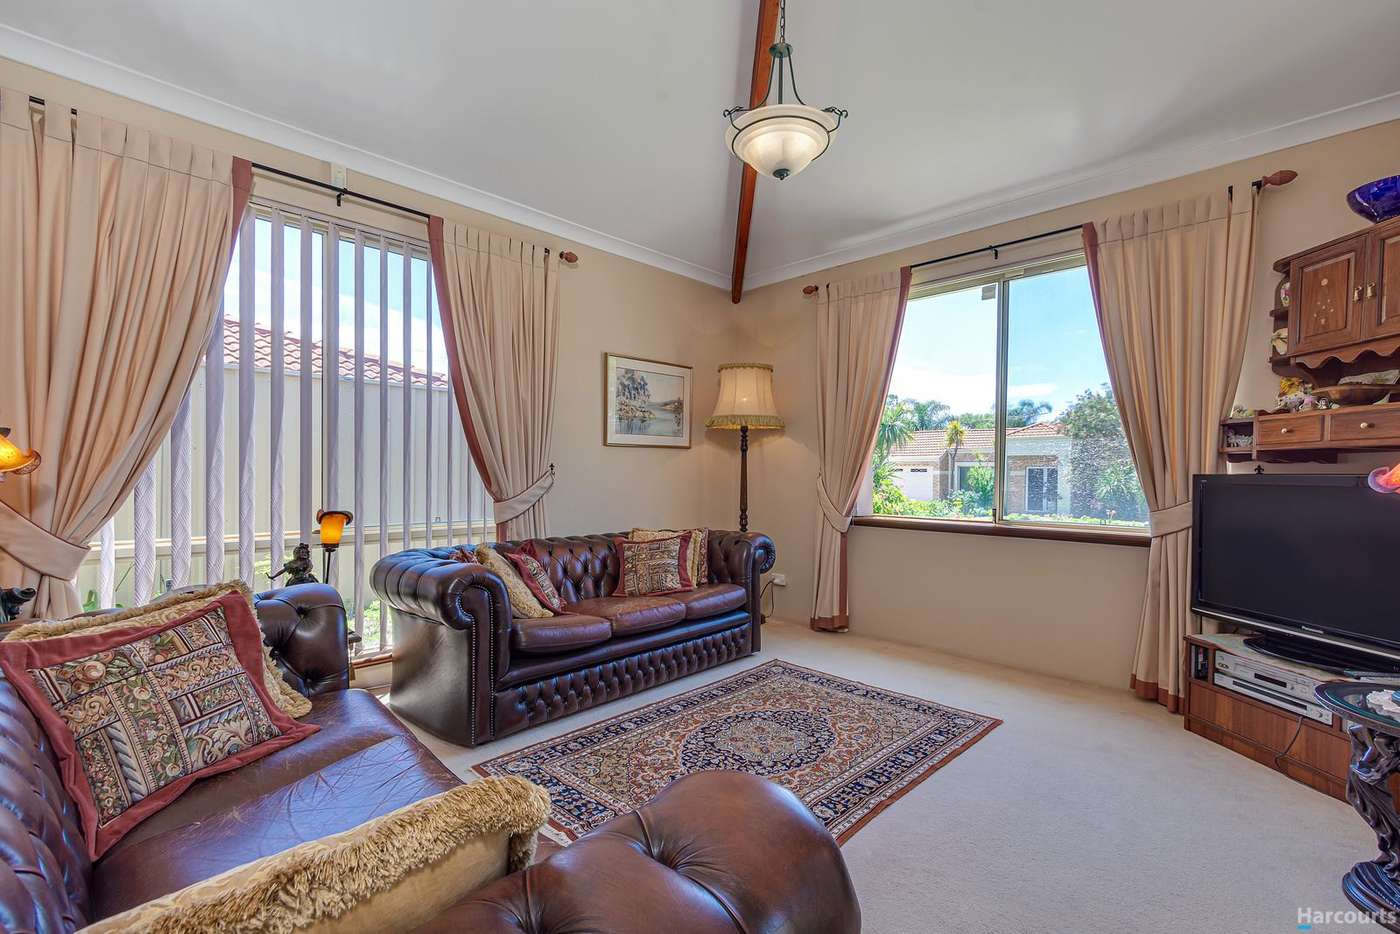 Sixth view of Homely house listing, 21 Shenandoah Mews, Currambine WA 6028